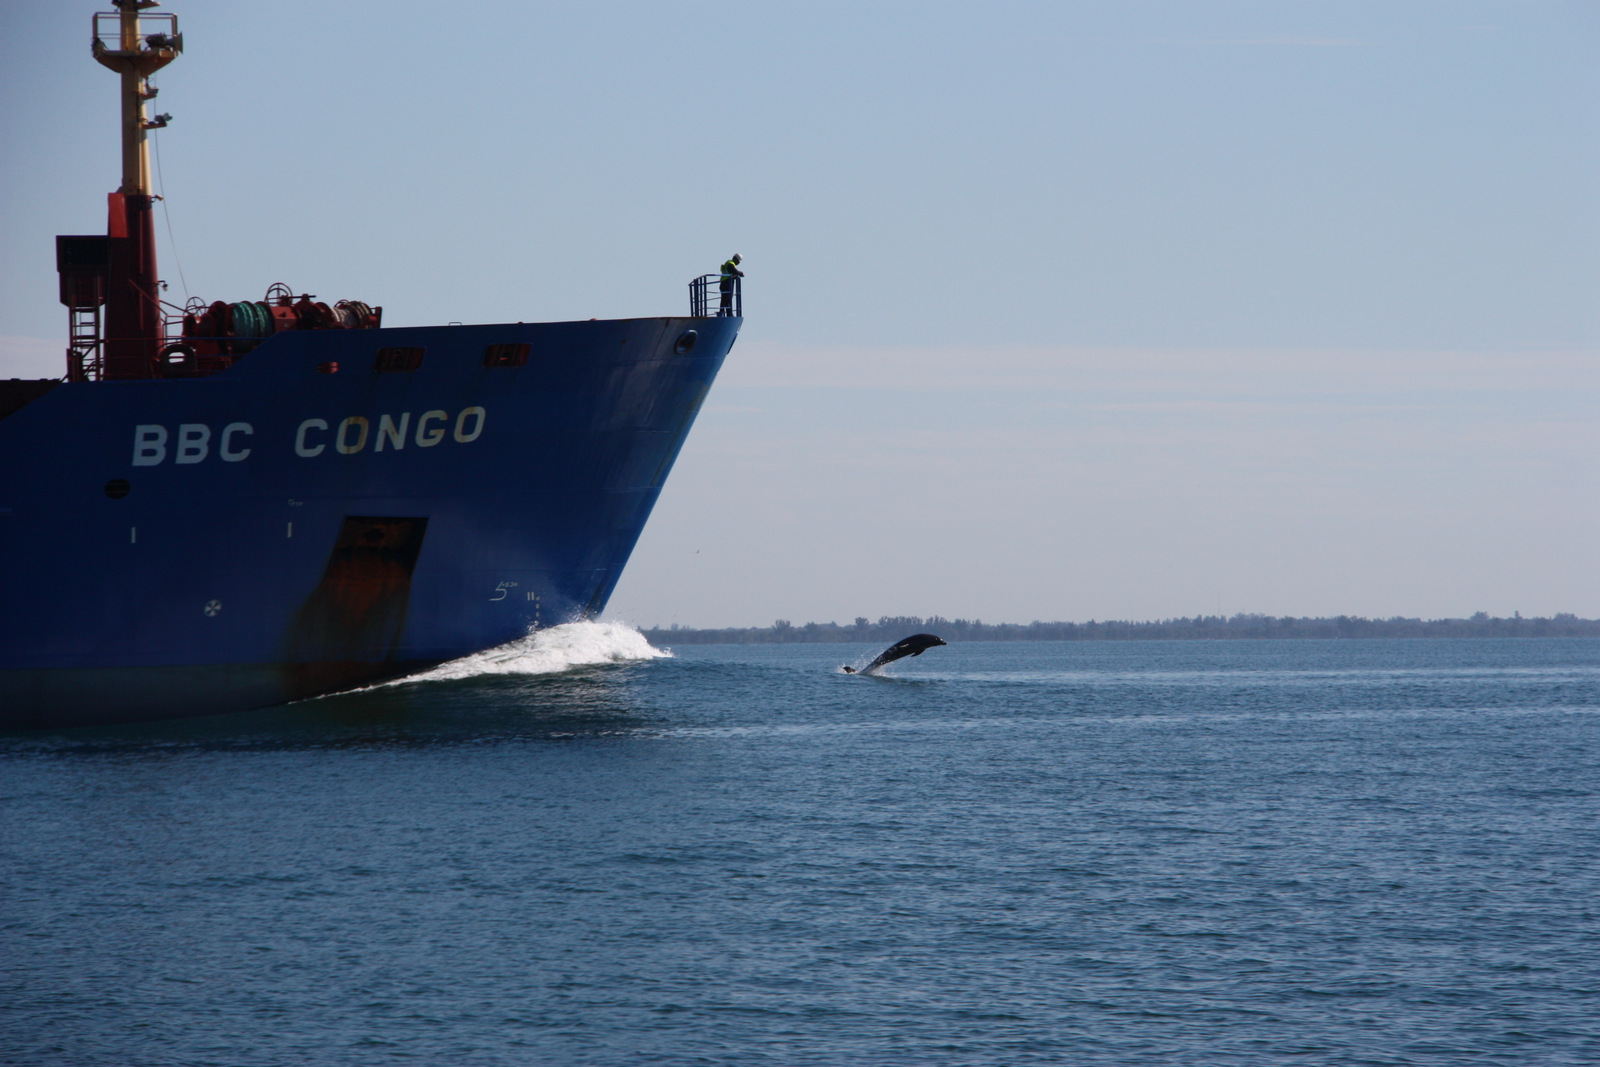 Dolphins playing on the bow wave of the tanker